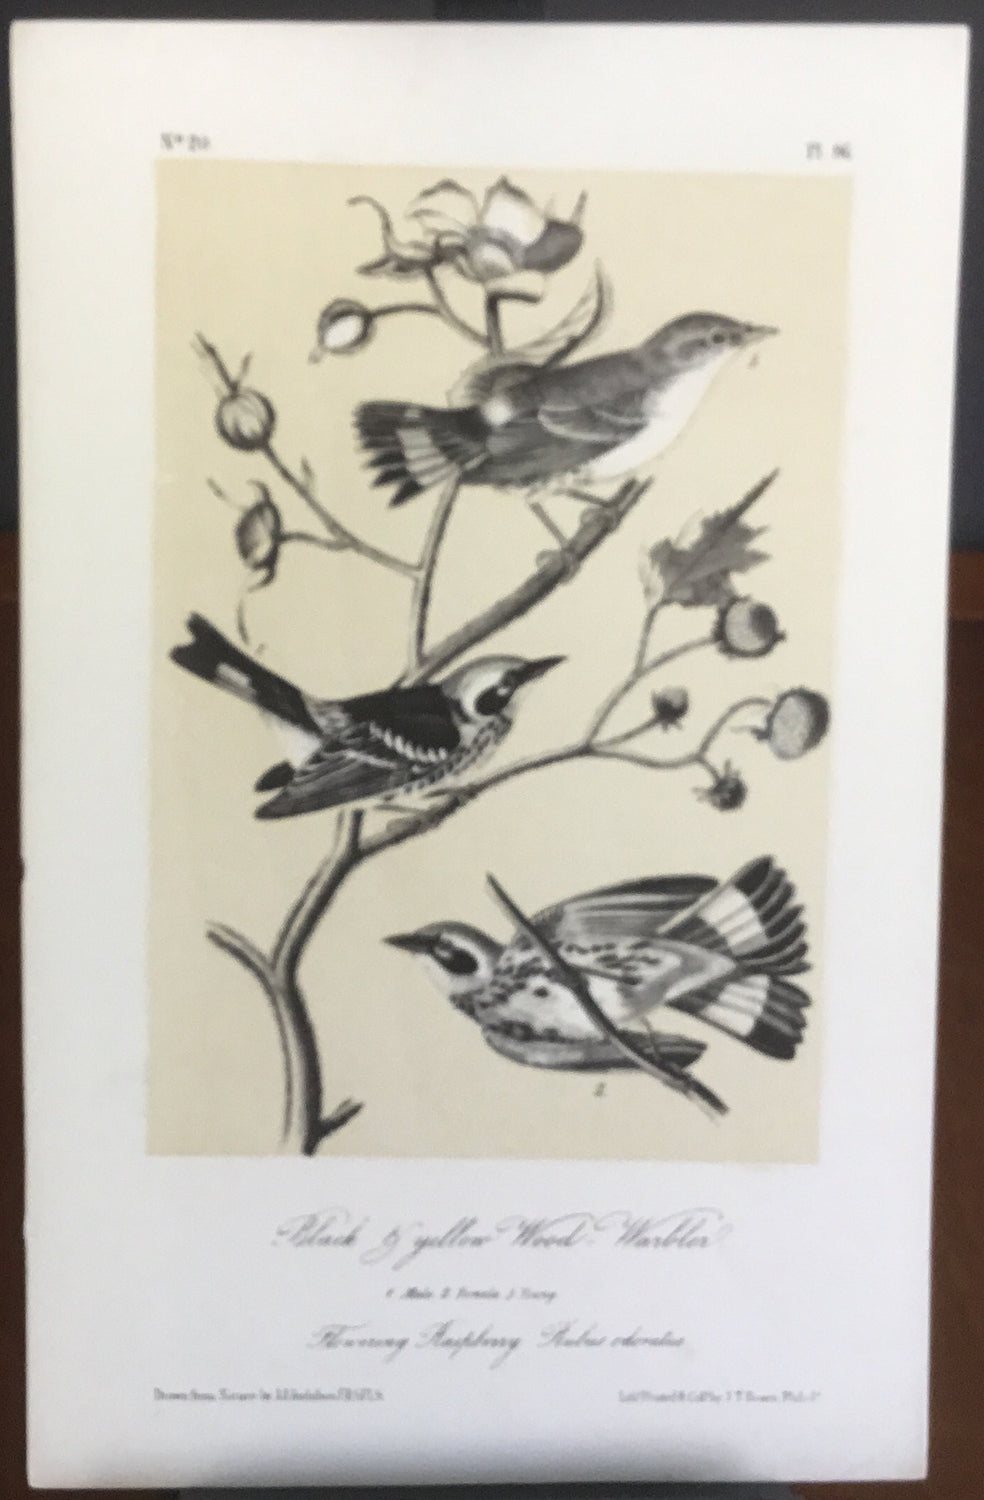 Audubon Octavo Black and Yellow Wood Warbler, plate 96, uncolored test sheet, 7 x 11